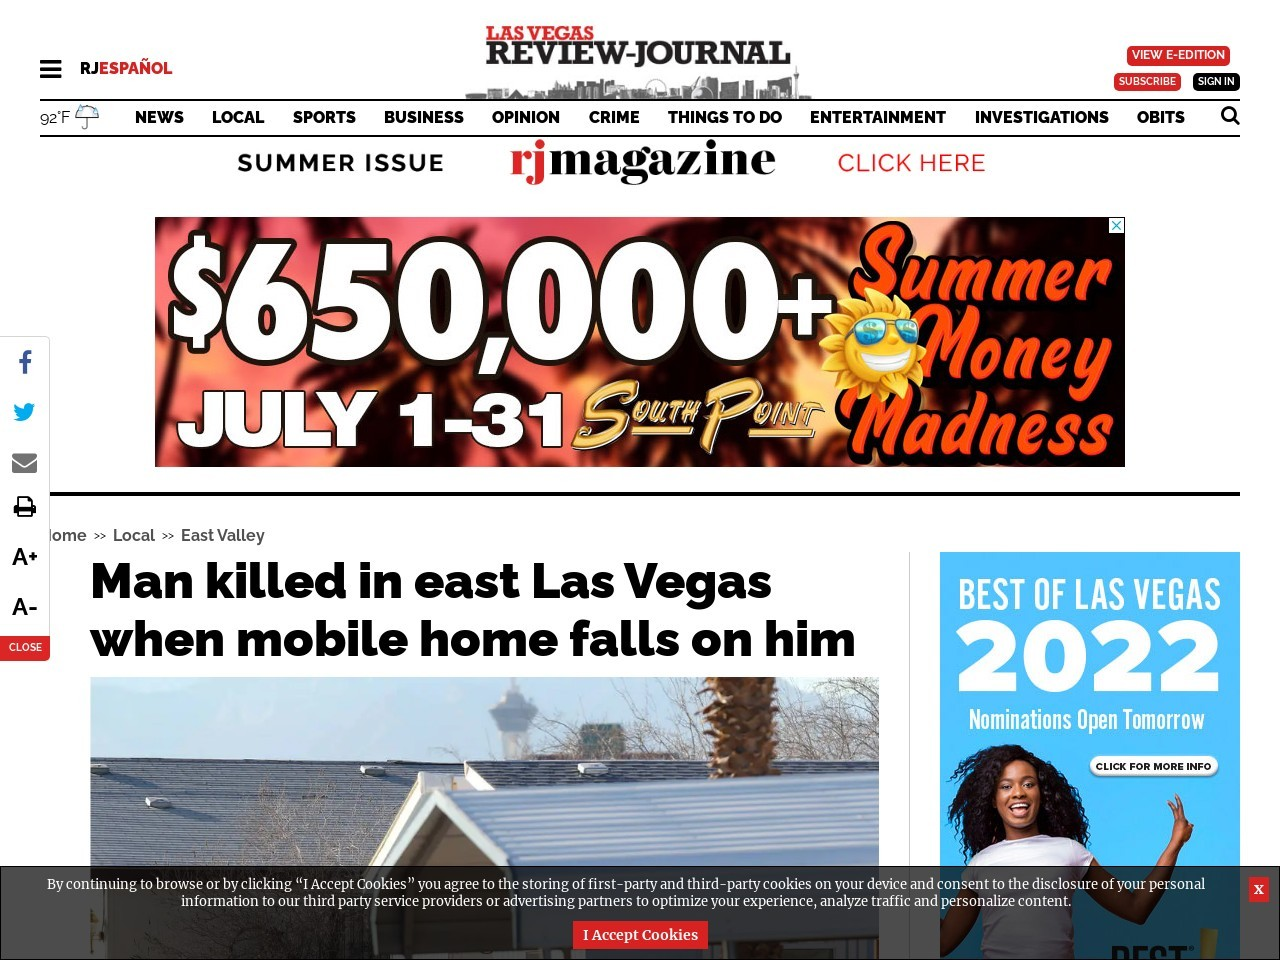 Man killed in east Las Vegas when mobile home falls on him